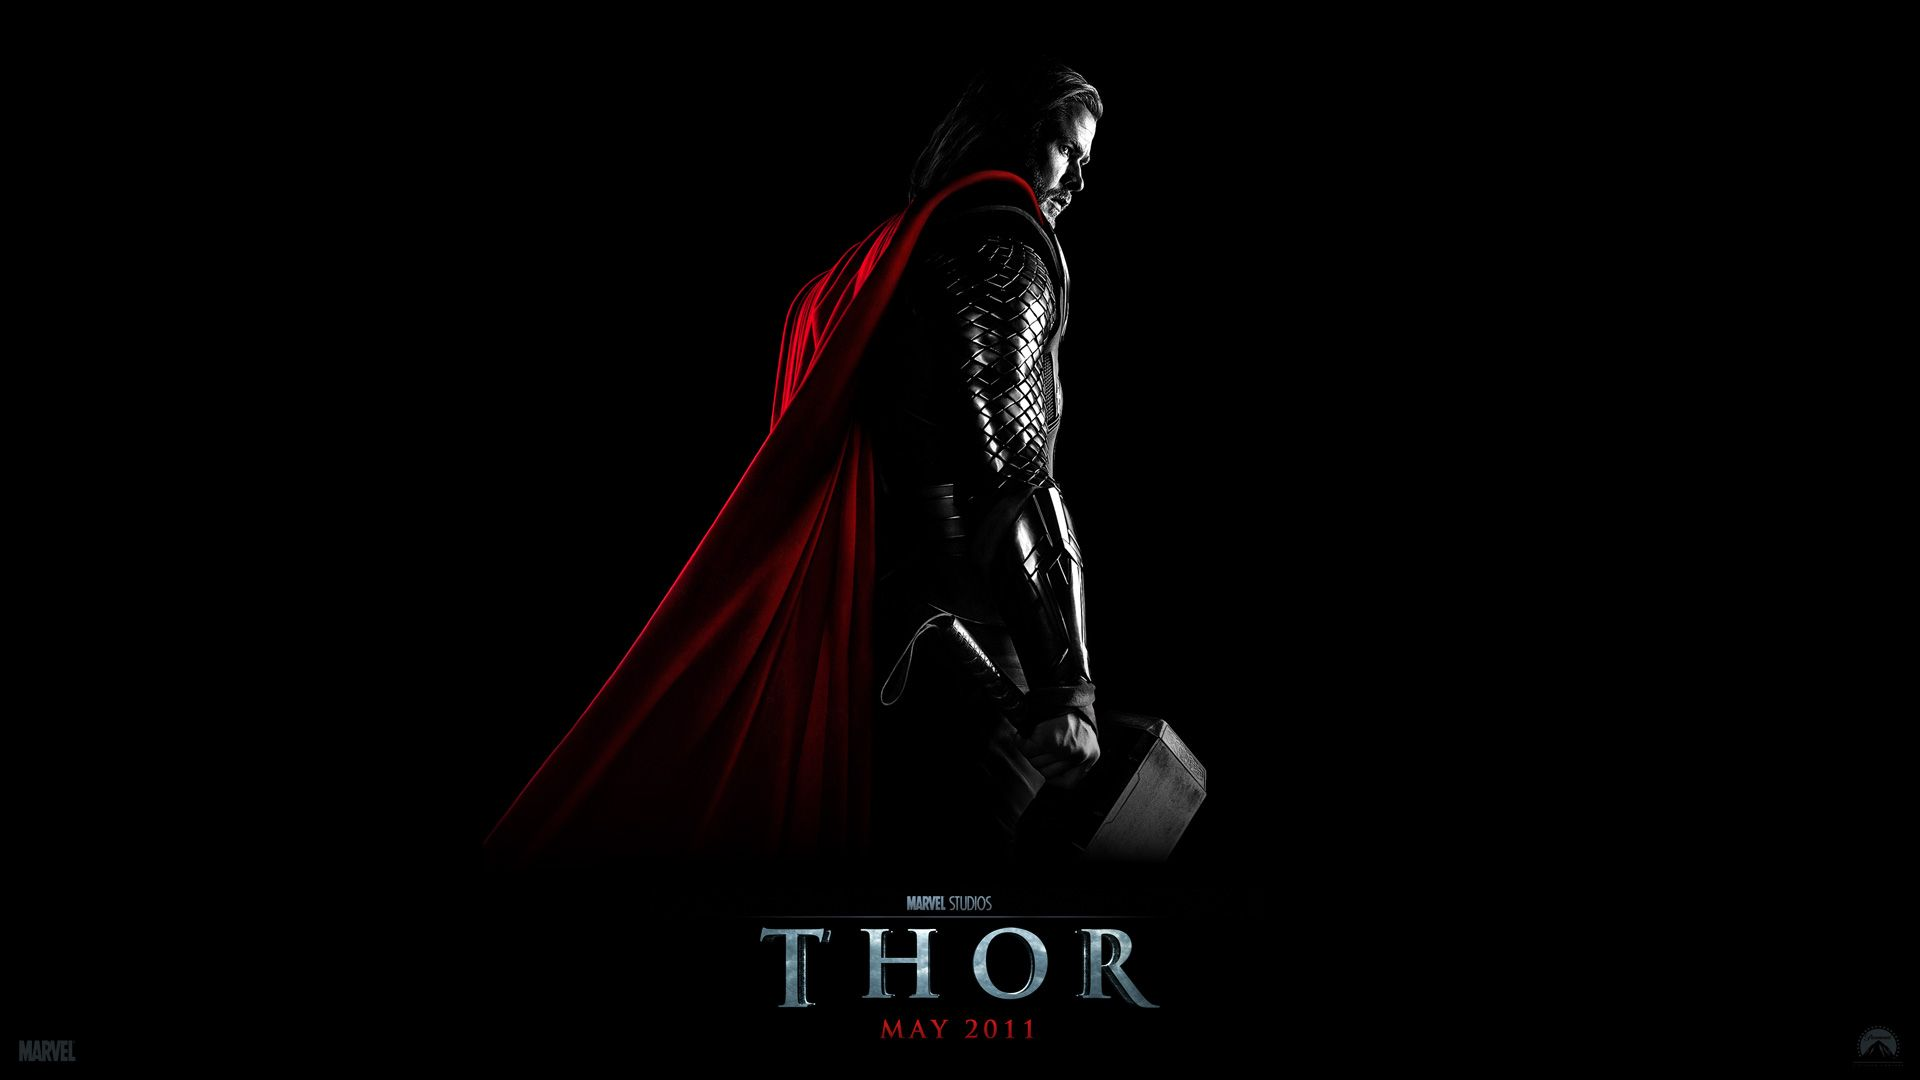 Official 'Thor' Poster.